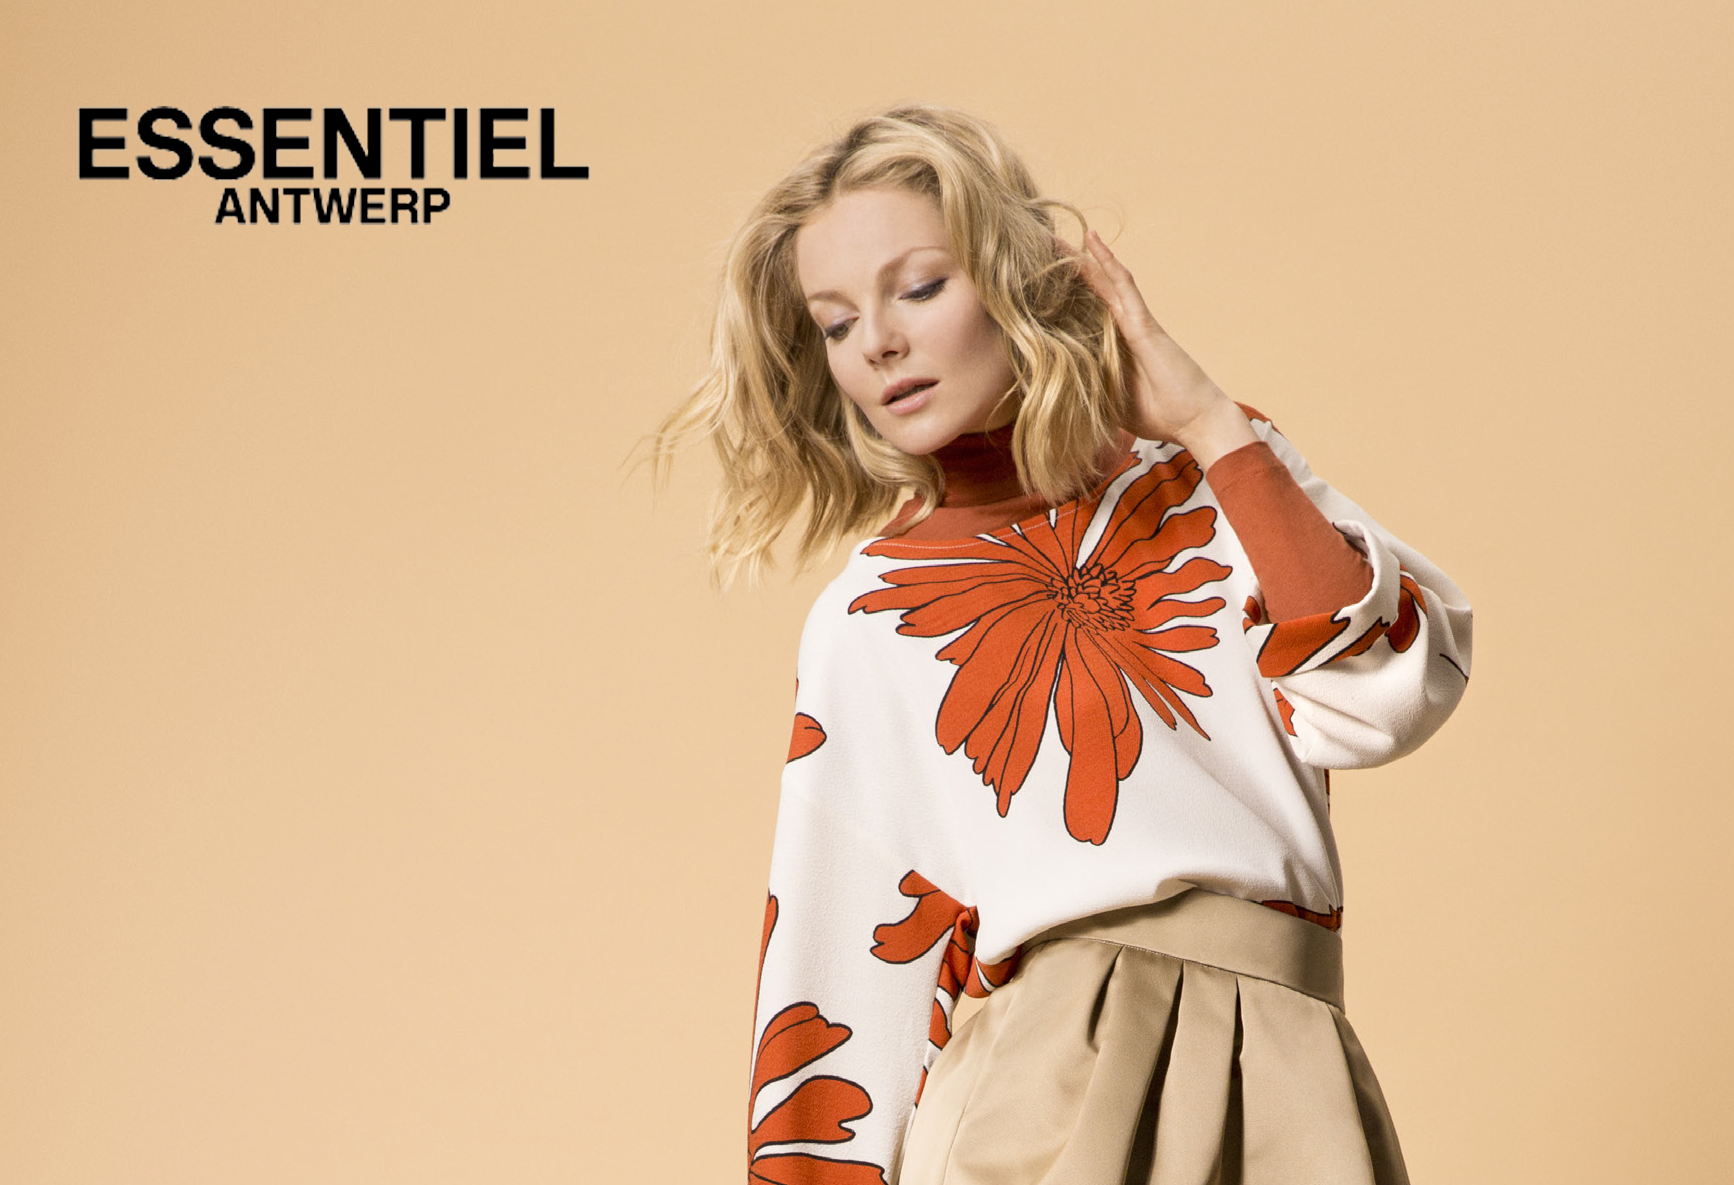 Essetiel  Essetiel, fun fashion through a subtle mix of prints, colors & fabrics. Essentiel is a line created in 1999 by Esfandiar Eghtessadi (Nicole Cadine's son) & his wife Inge Onsea & is Antwepen based. Essentiel stands for refreshing offbeat & luxurious fashion, renowned for its graphic & floral prints & trendy mixes of color. The collections & rich, unique and accessible.